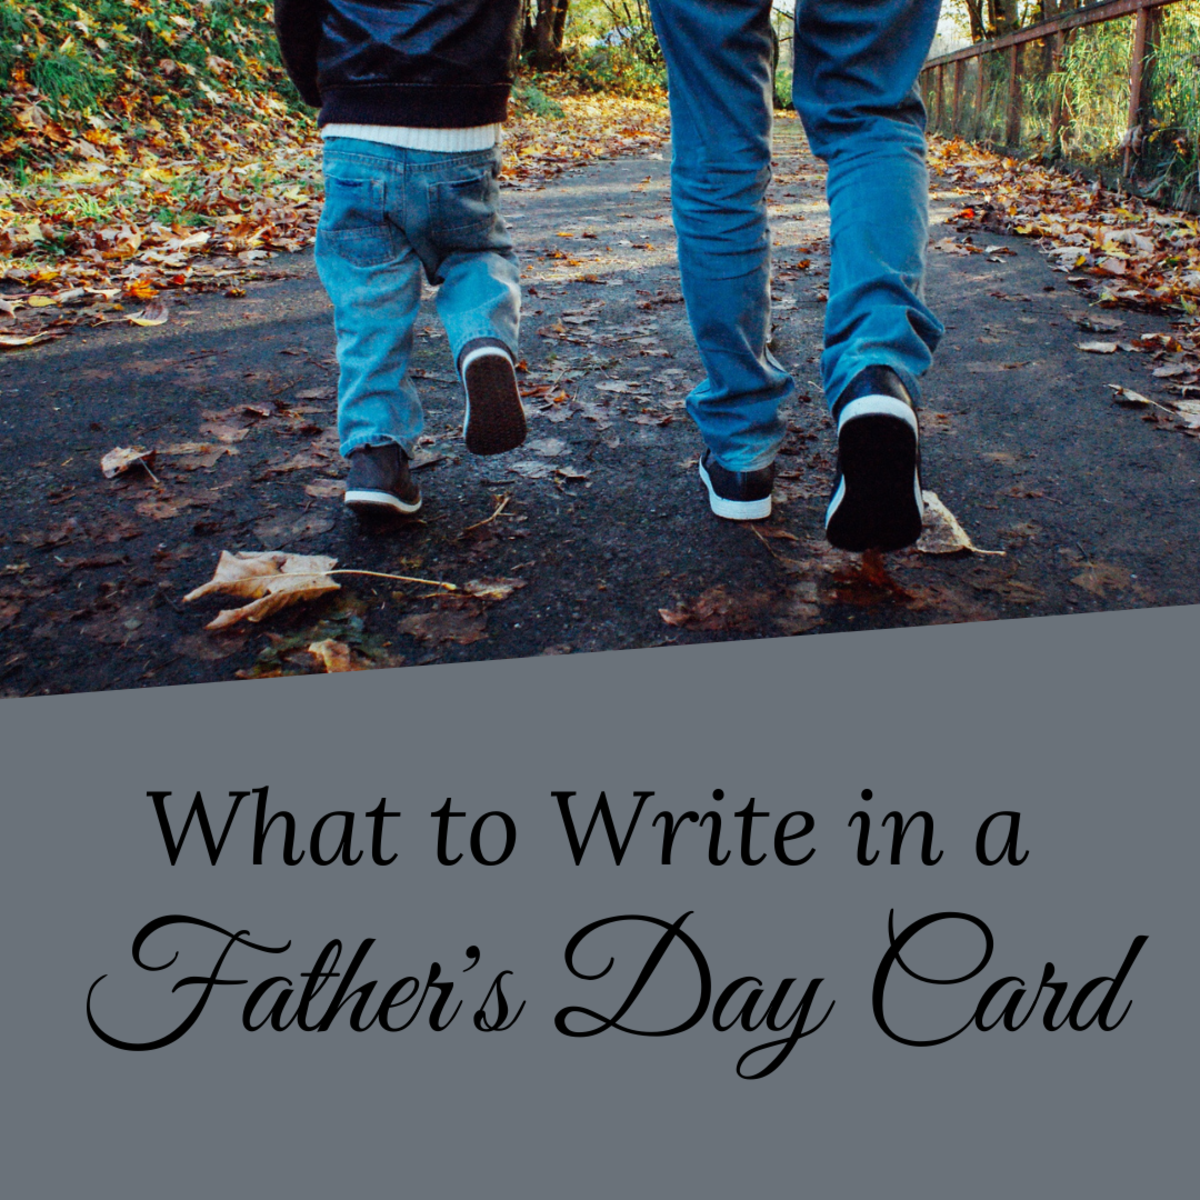 Read some ideas for sincere, funny, and Christian messages for a dad or stepfather on Father's Day.